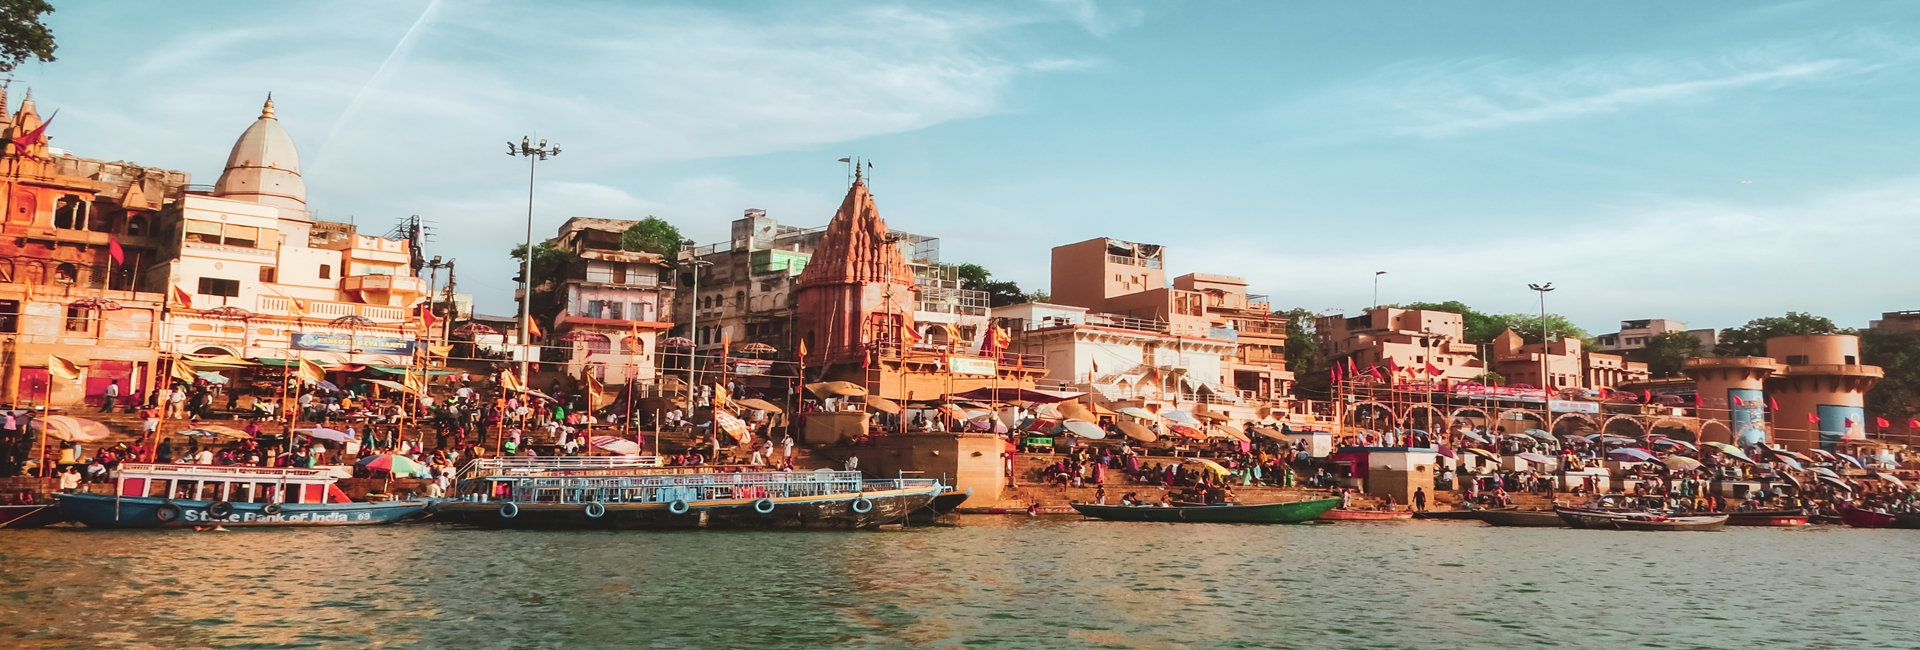 kashi india tour and travel